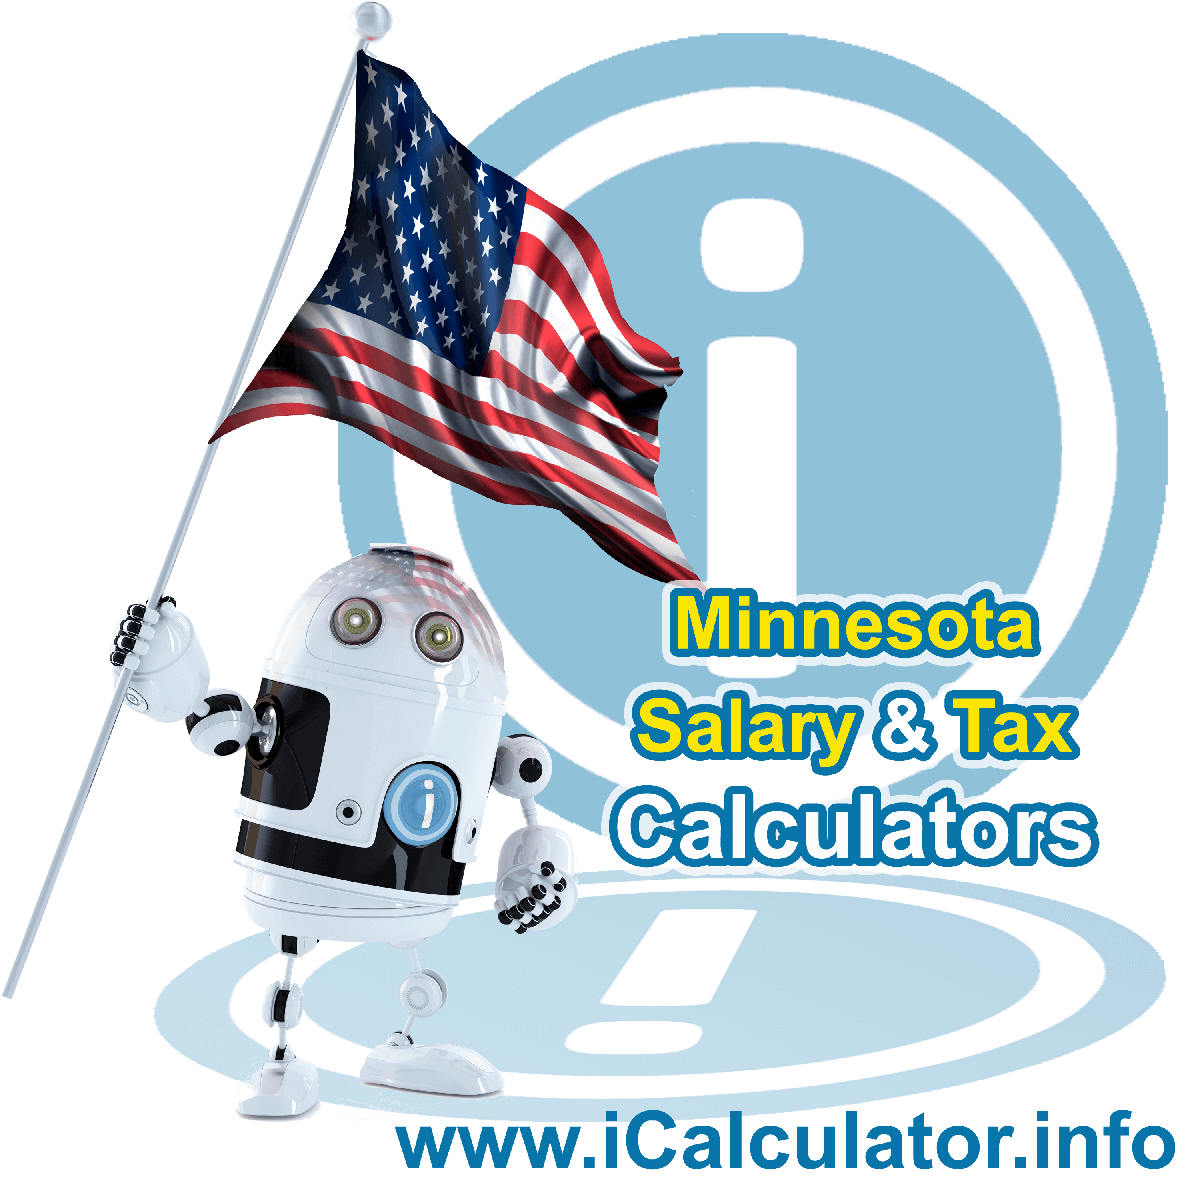 Minnesota Salary Calculator 2021 | iCalculator™ | The Minnesota Salary Calculator allows you to quickly calculate your salary after tax including Minnesota State Tax, Federal State Tax, Medicare Deductions, Social Security, Capital Gains and other income tax and salary deductions complete with supporting Minnesota state tax tables